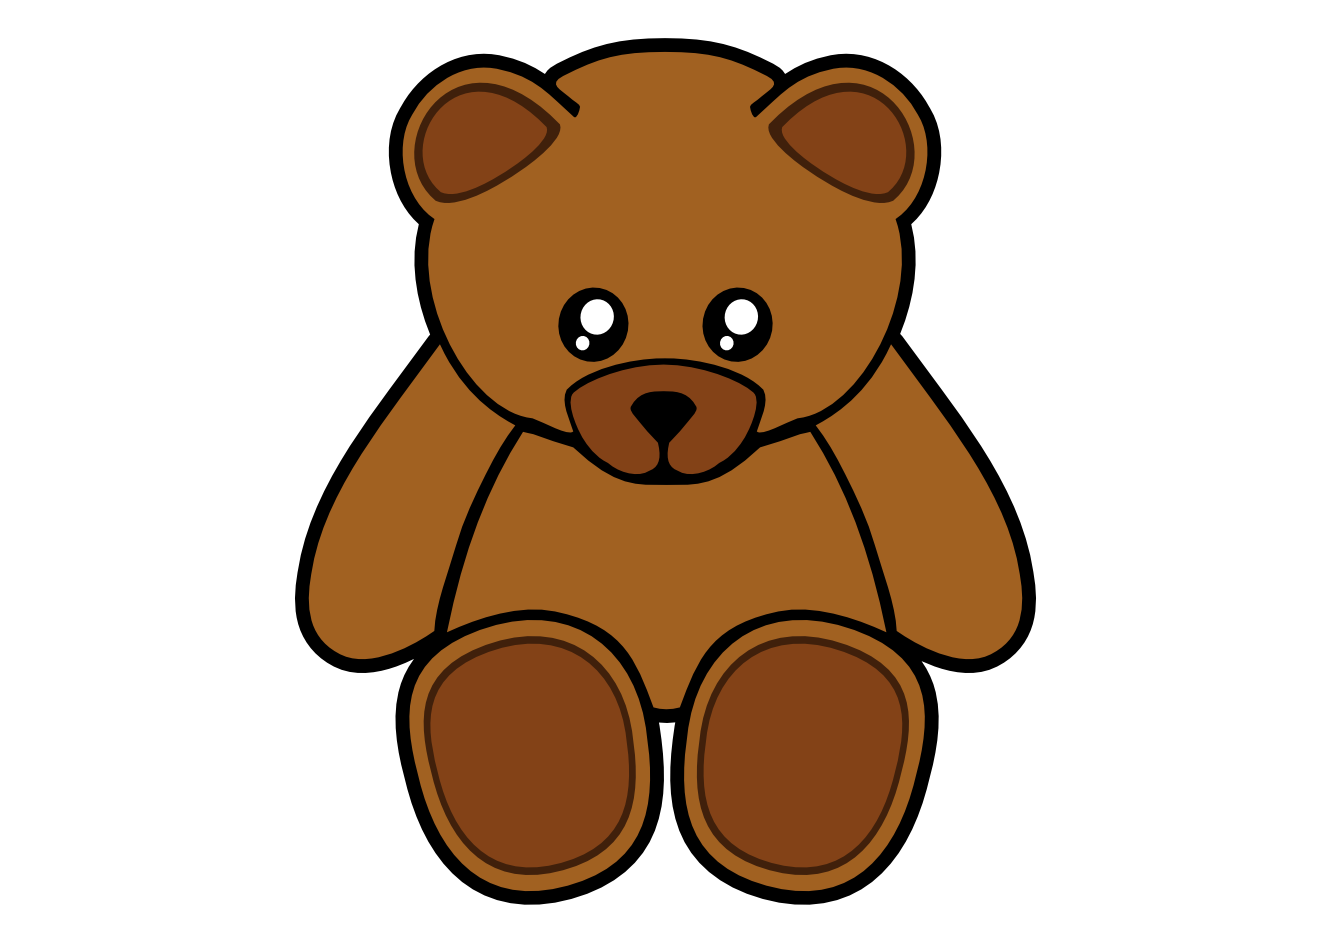 Free Teddy Bear Transparent Background, Download Free Clip.